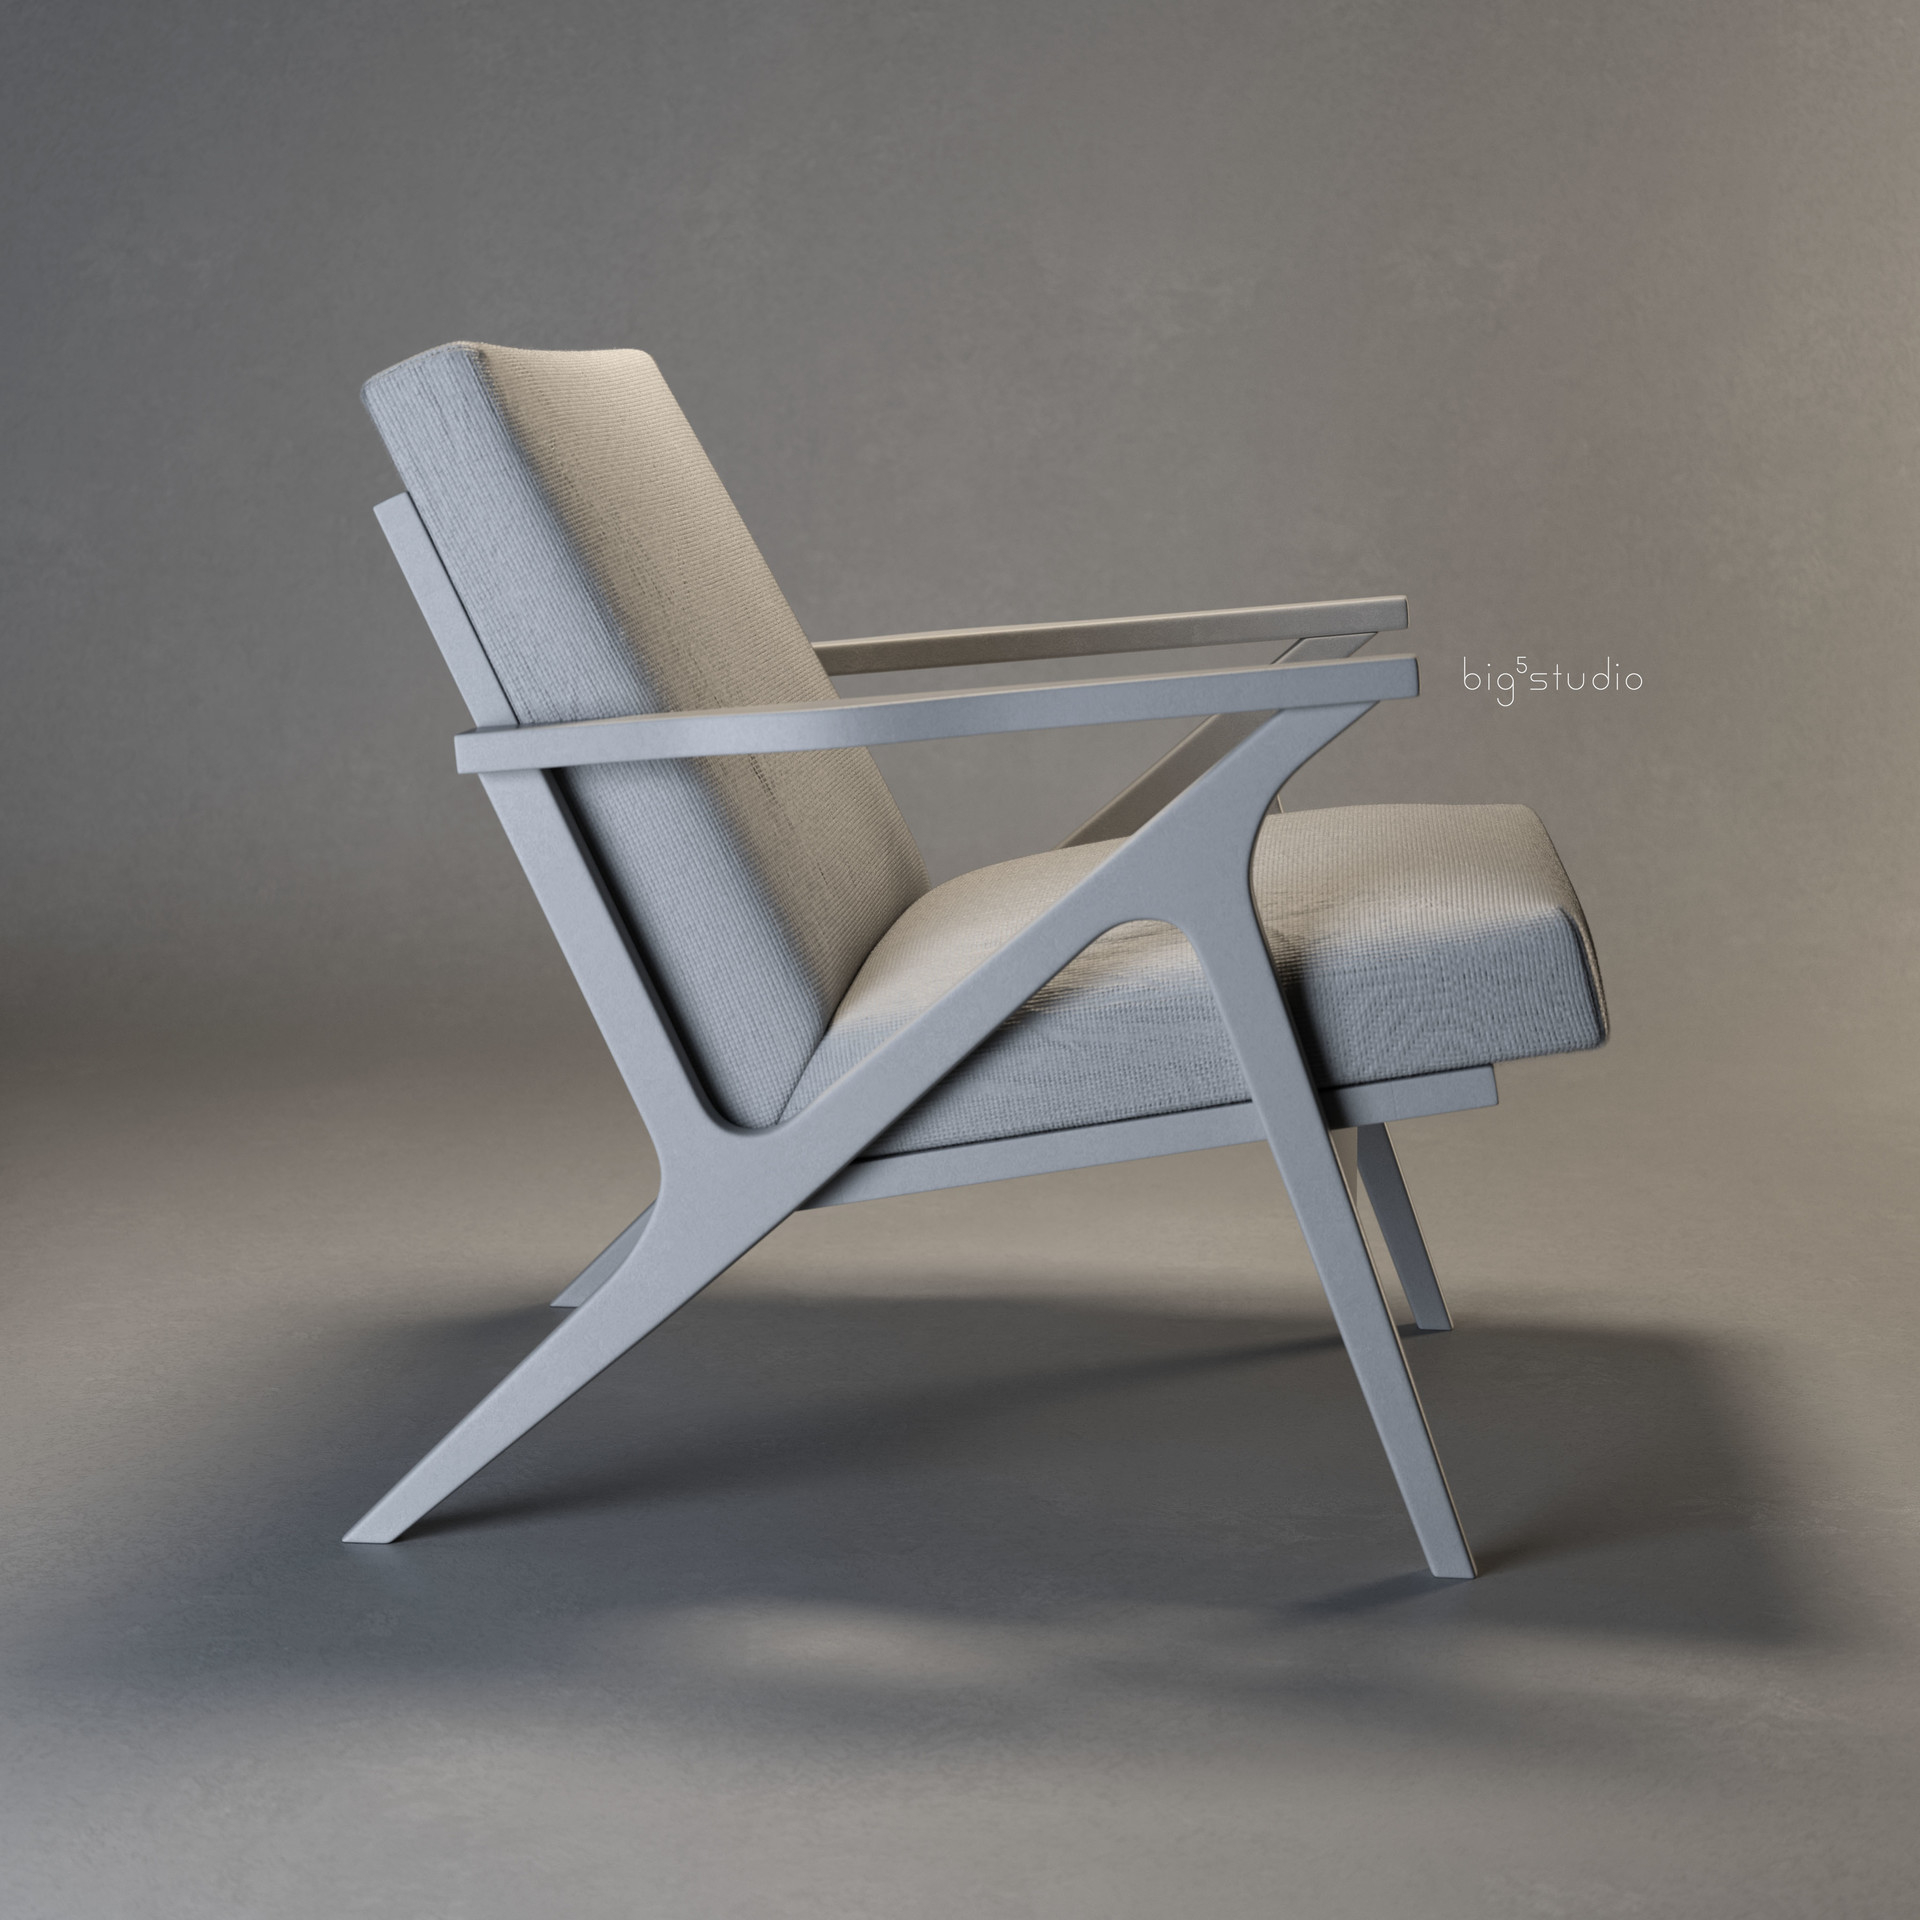 Neal biggs product chair cavettwoodframe0001 clay